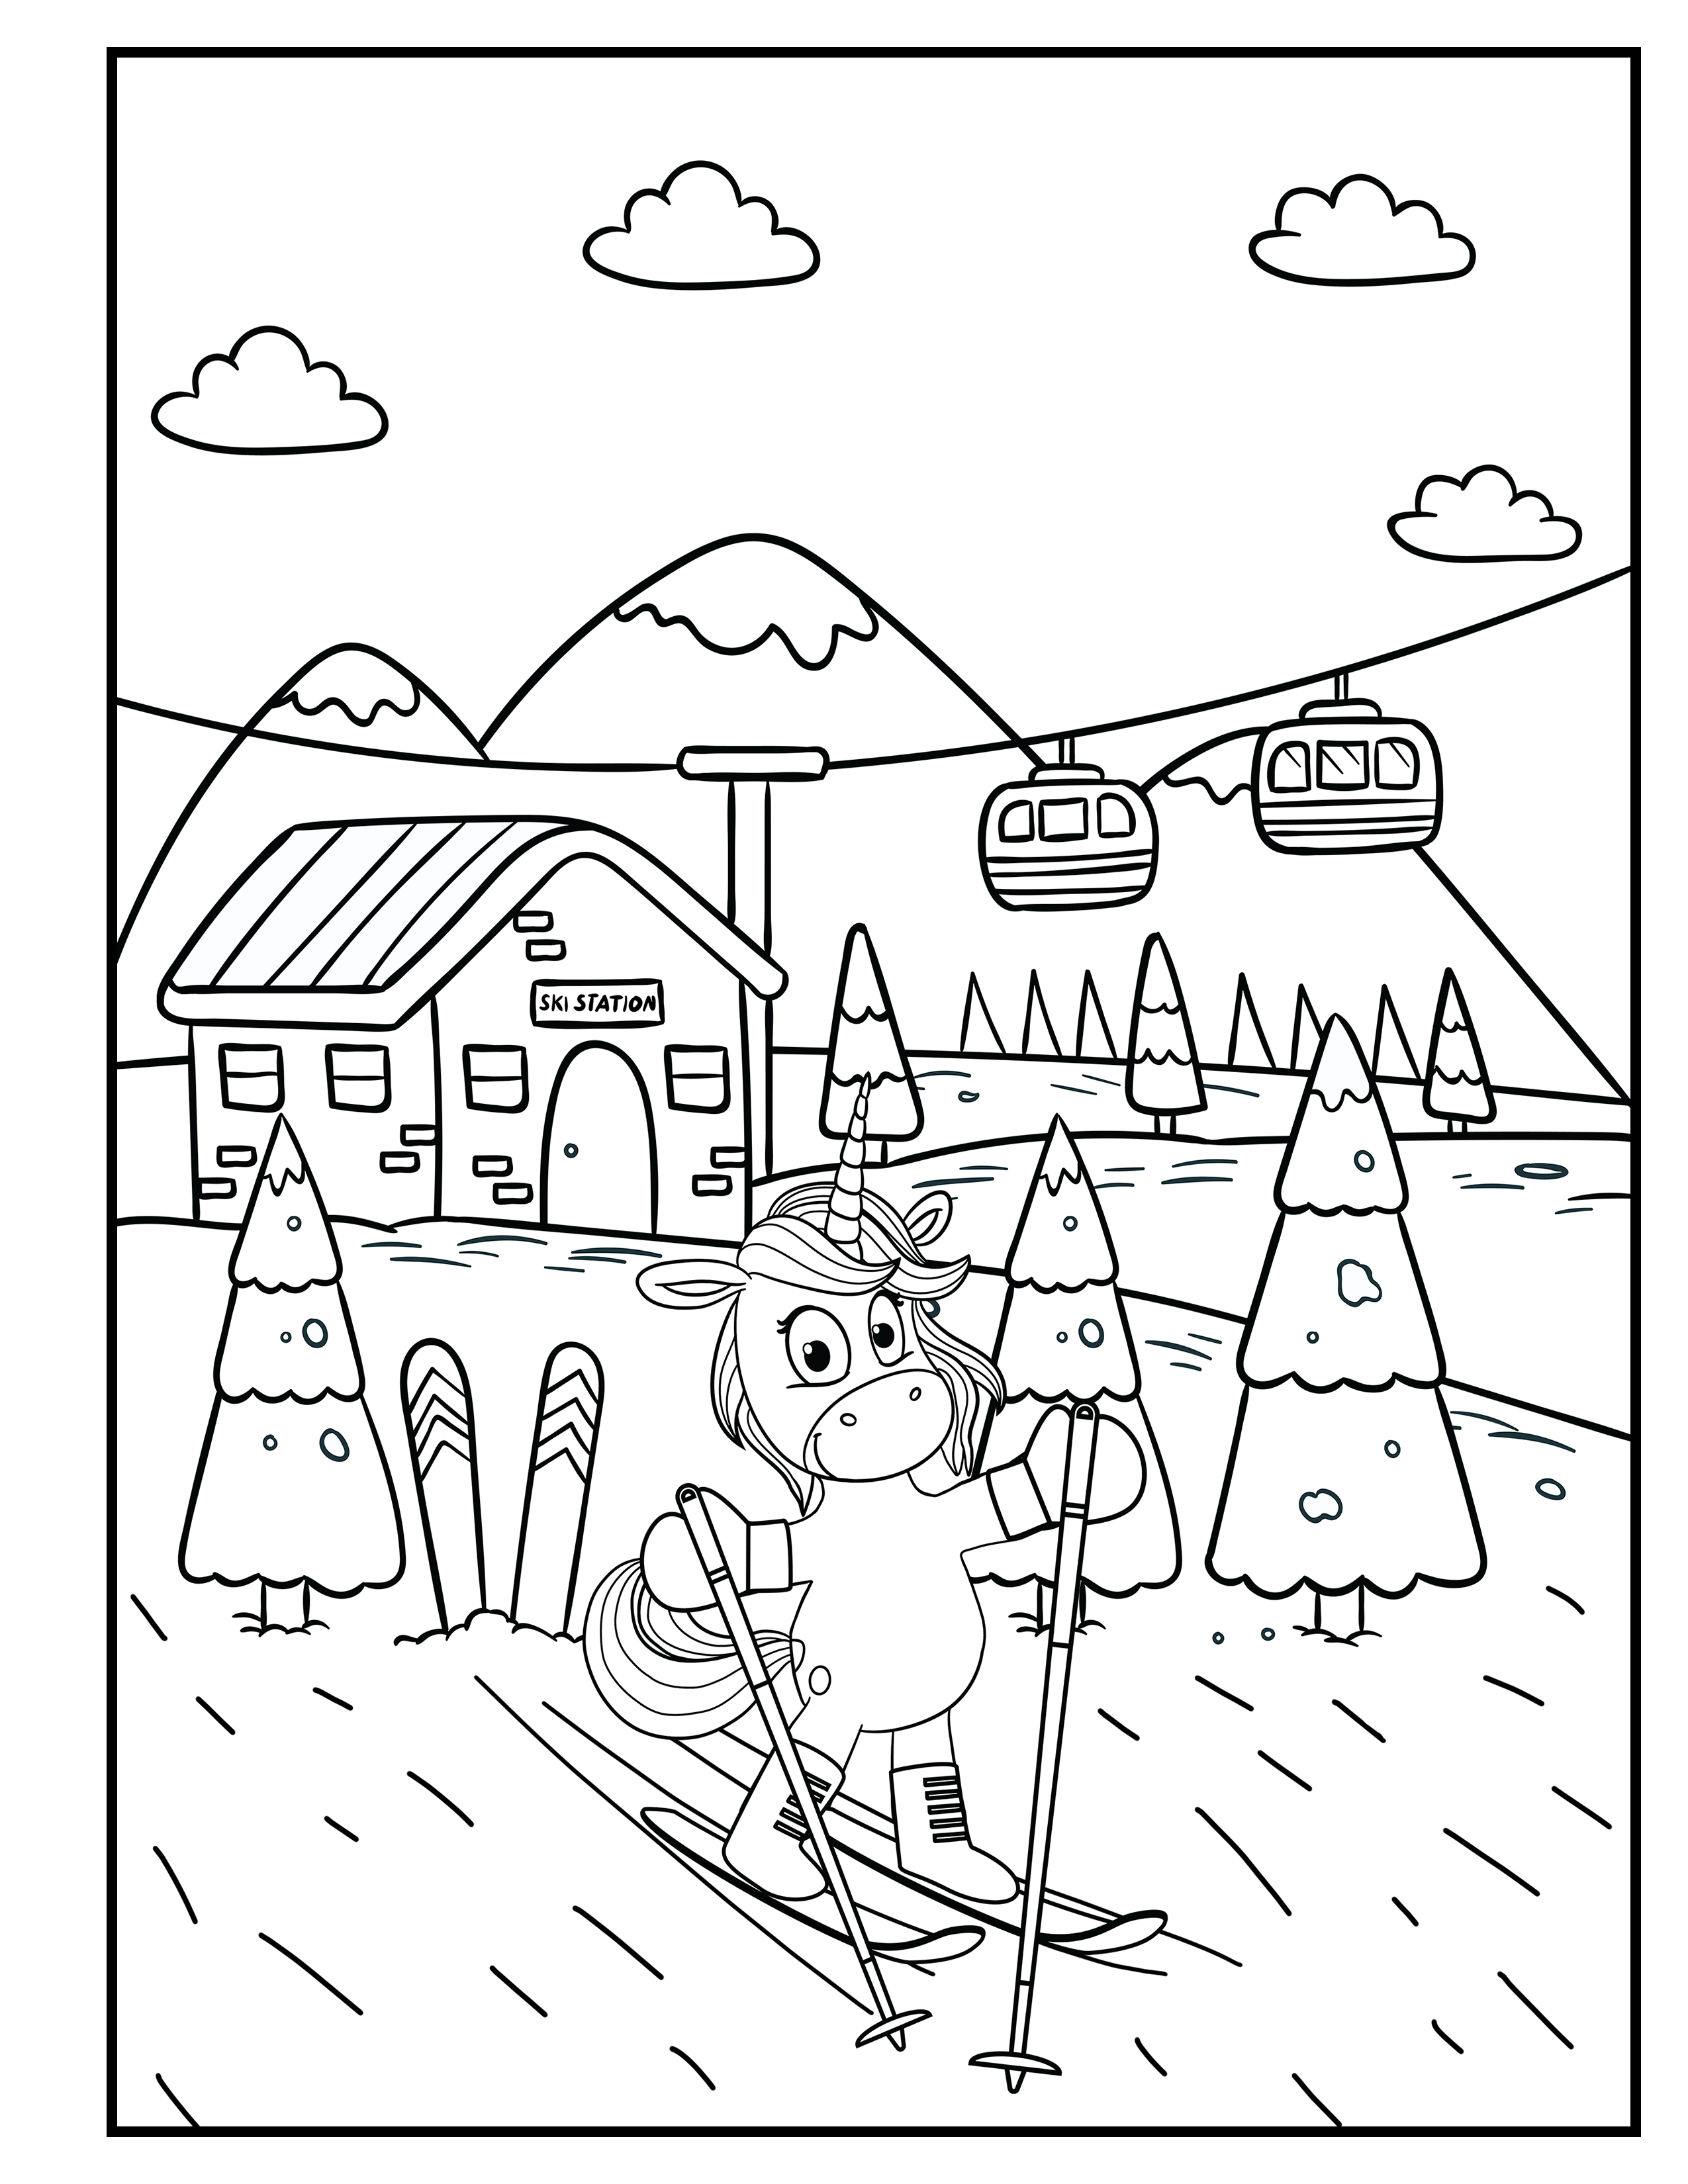 Unicorn In Winter Unicorn On Skis Unicorn Coloring Book For Kids By Katrin Brown Image 25 Coloring Books Book Girl Kids English